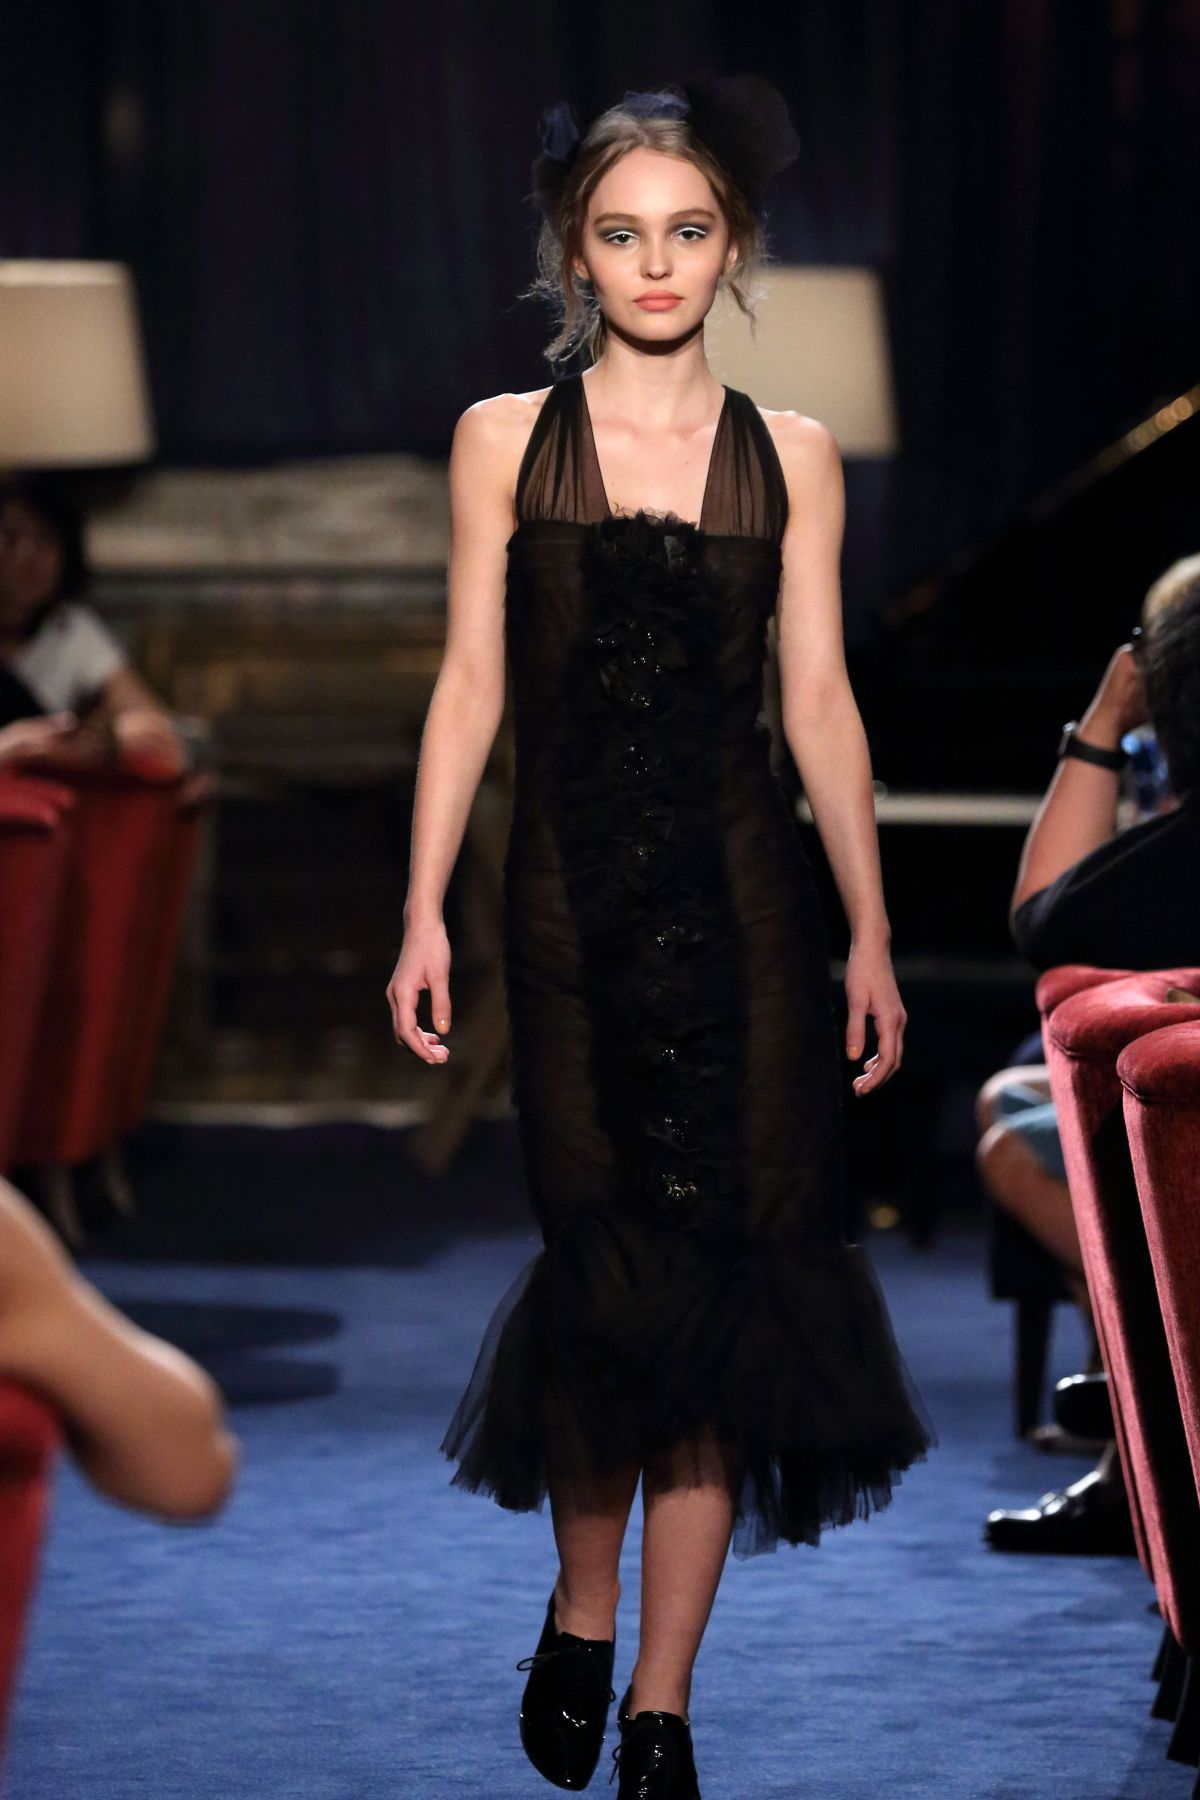 Lily rose depp at chanel metiers d 39 art 2016 17 collection fashion show in - Metiers d art lorraine ...